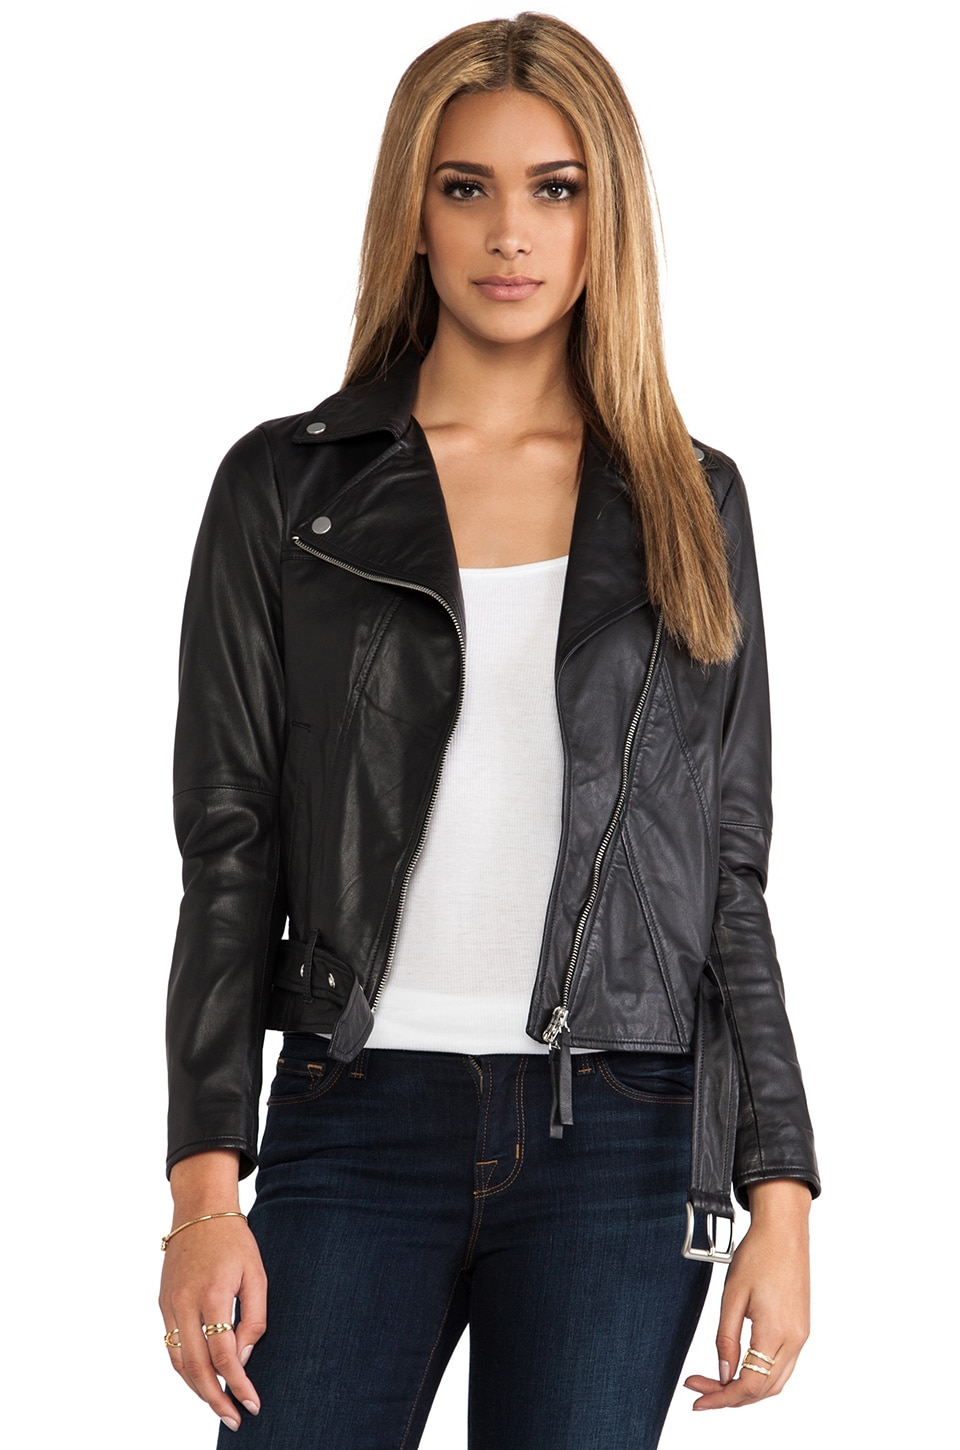 BROGDEN Leather Moto Jacket in Black